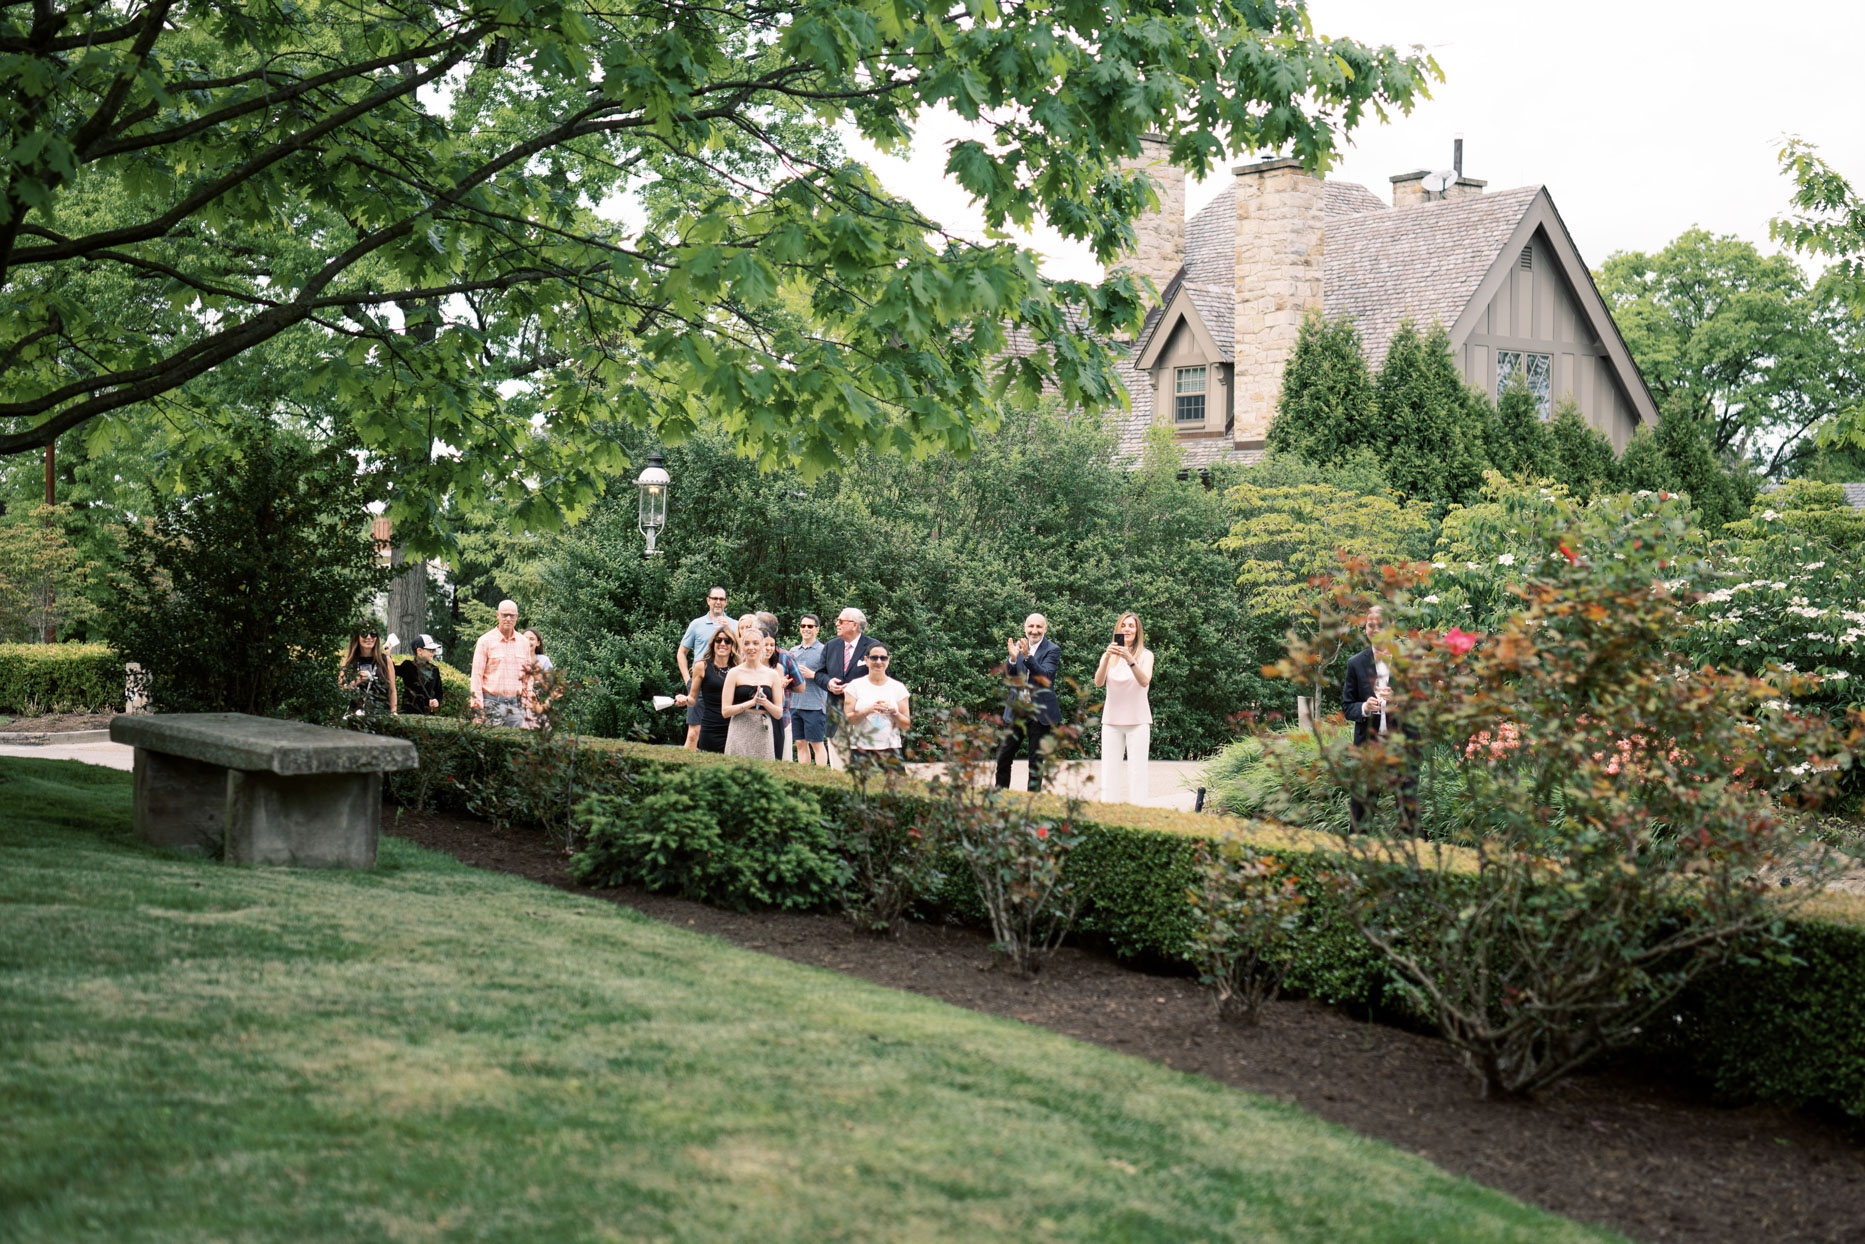 guests watching from a distance over garden hedge